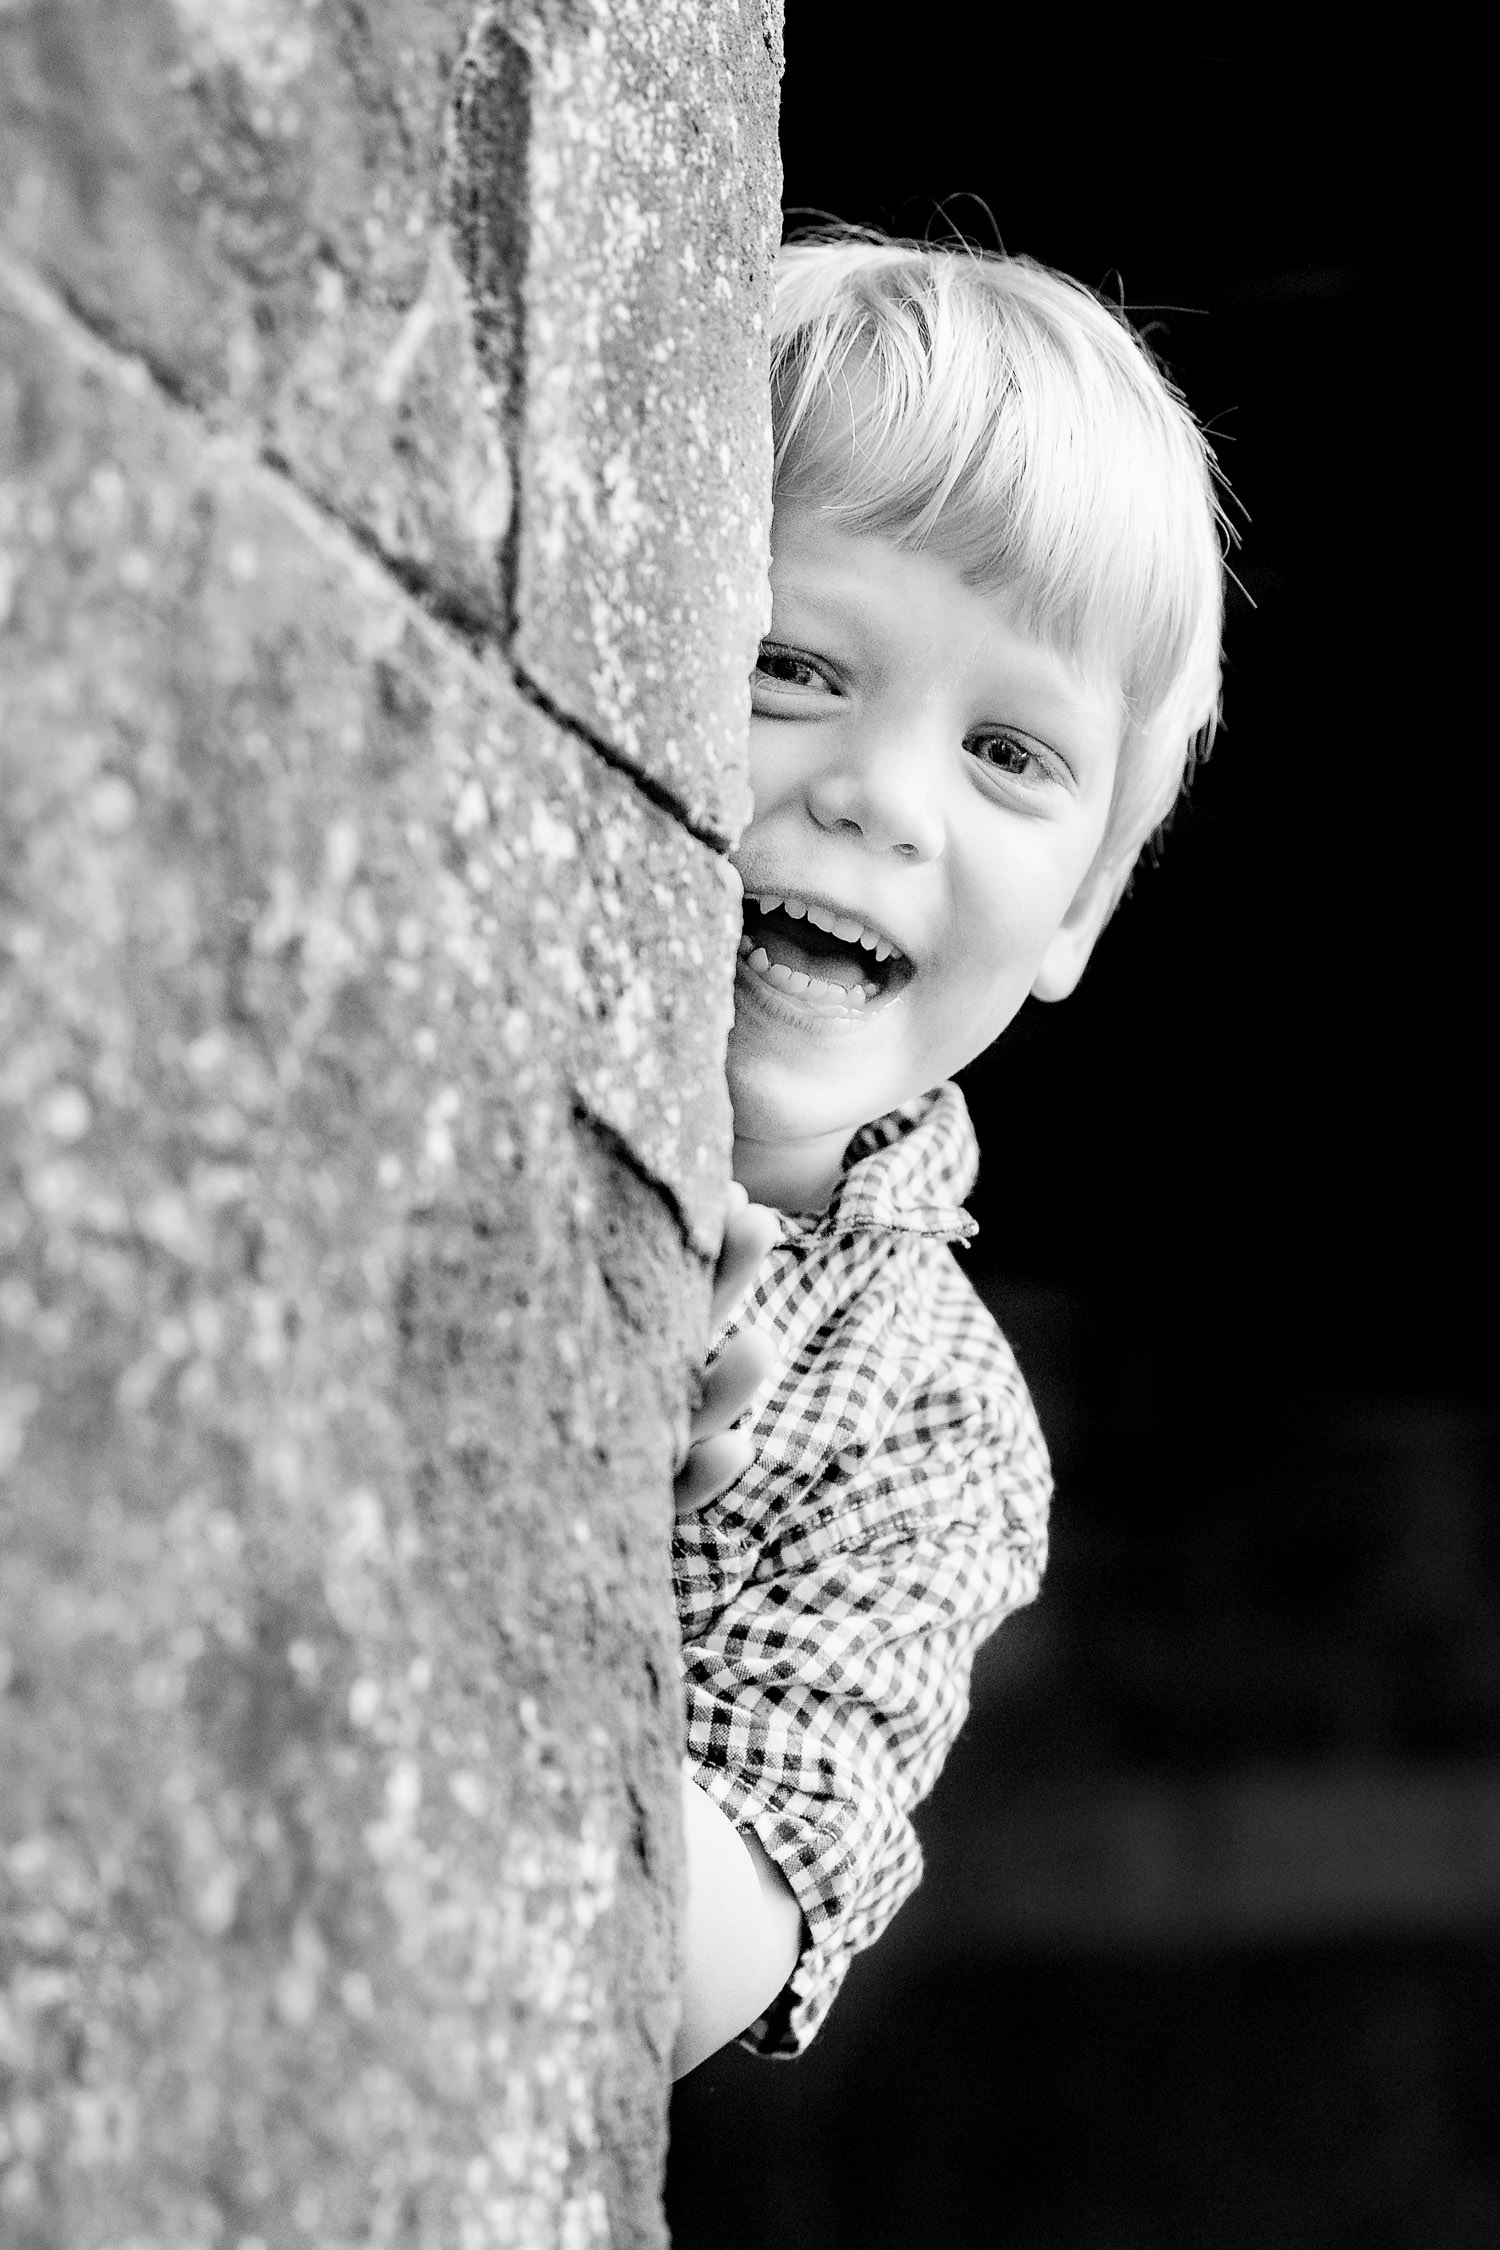 Boy looking around a wall